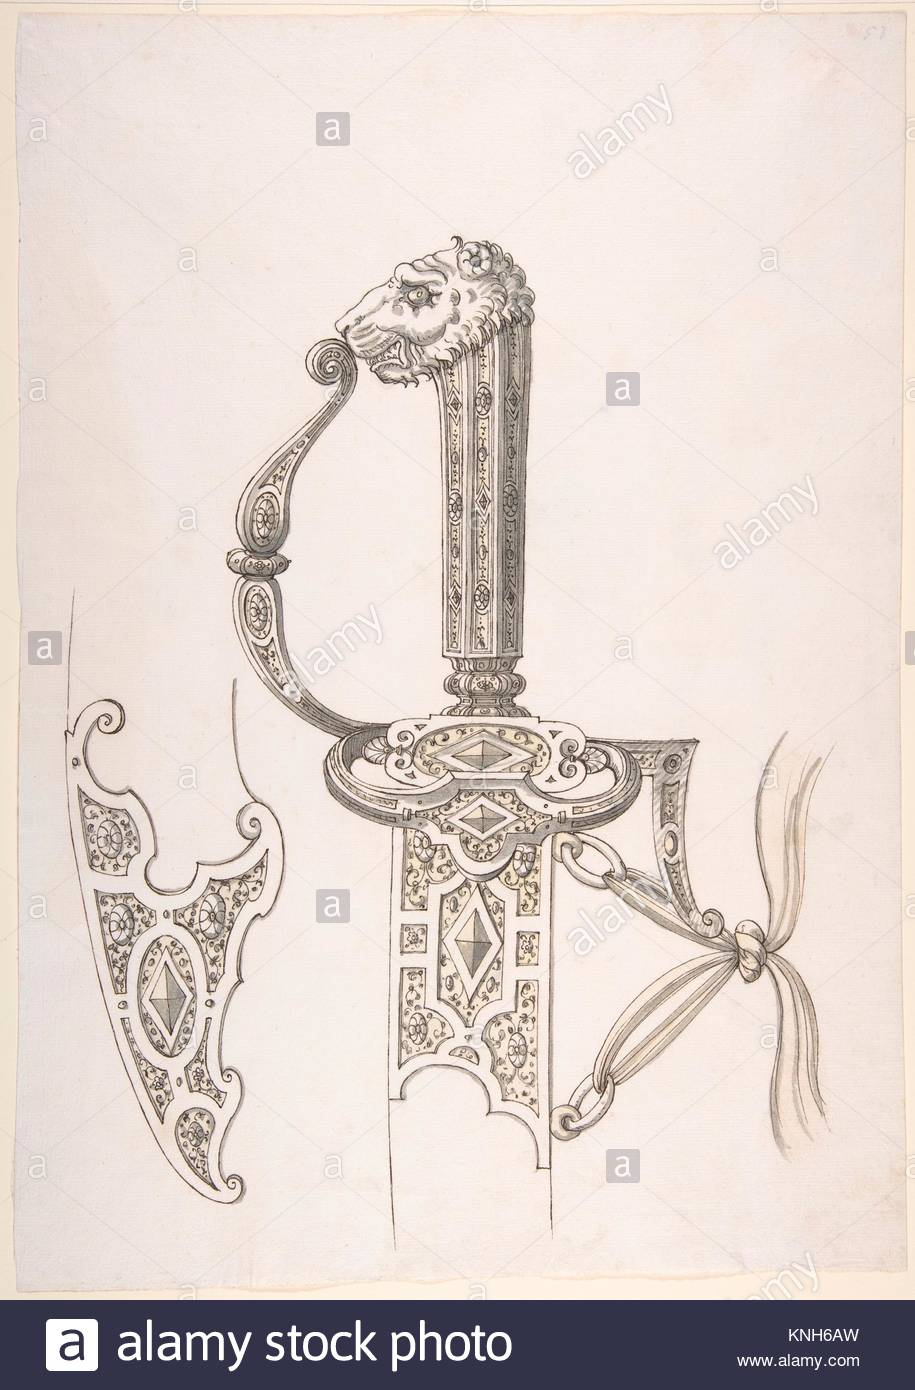 915x1390 Drawing Of Design For Sword Hilt And Tip Of Scabbard (Lion Head